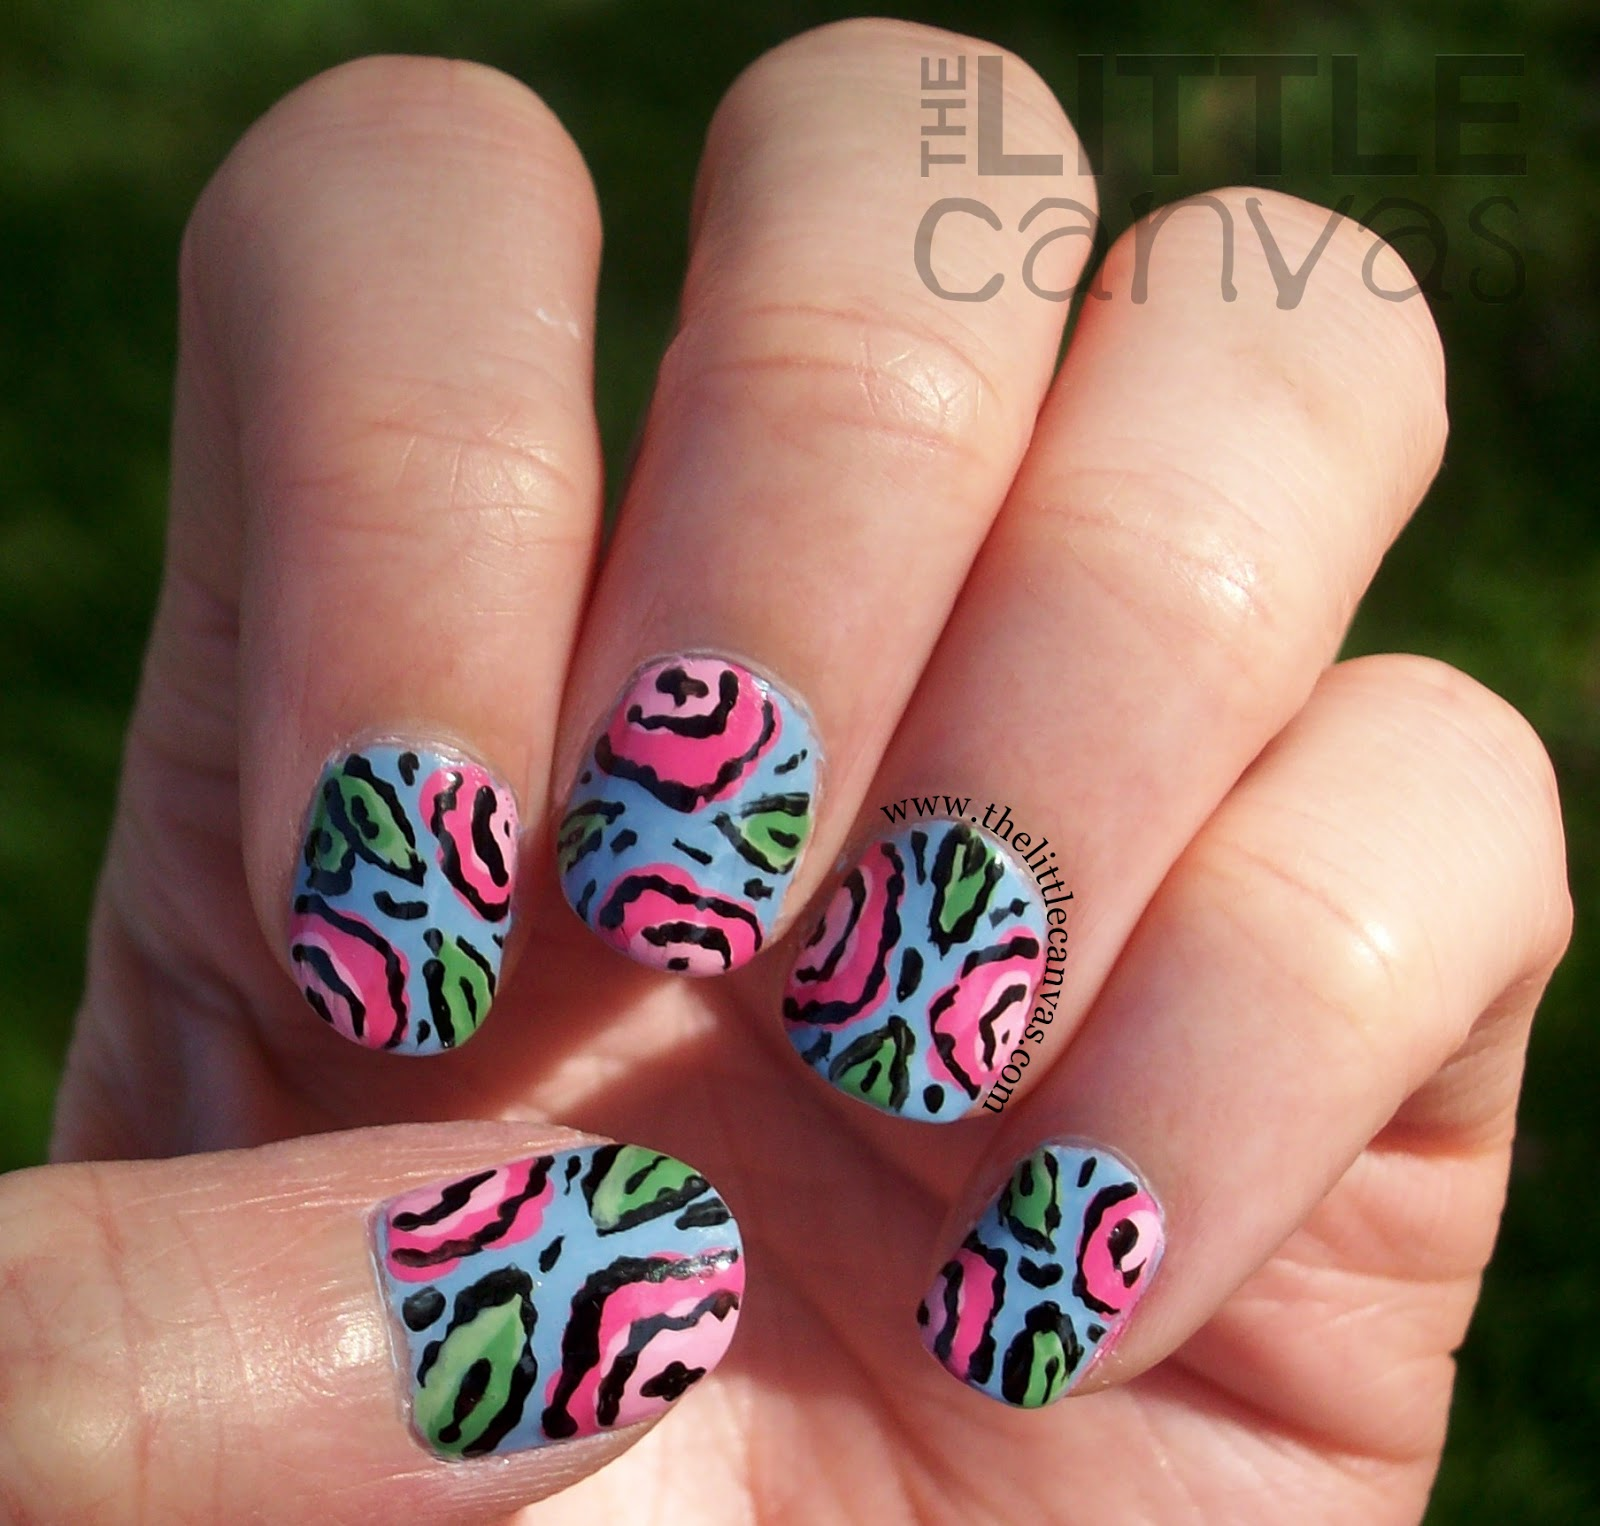 Nail Art Blue Floral: Blue-Ming (get It) Floral Nail Art Inspired By Pinterest